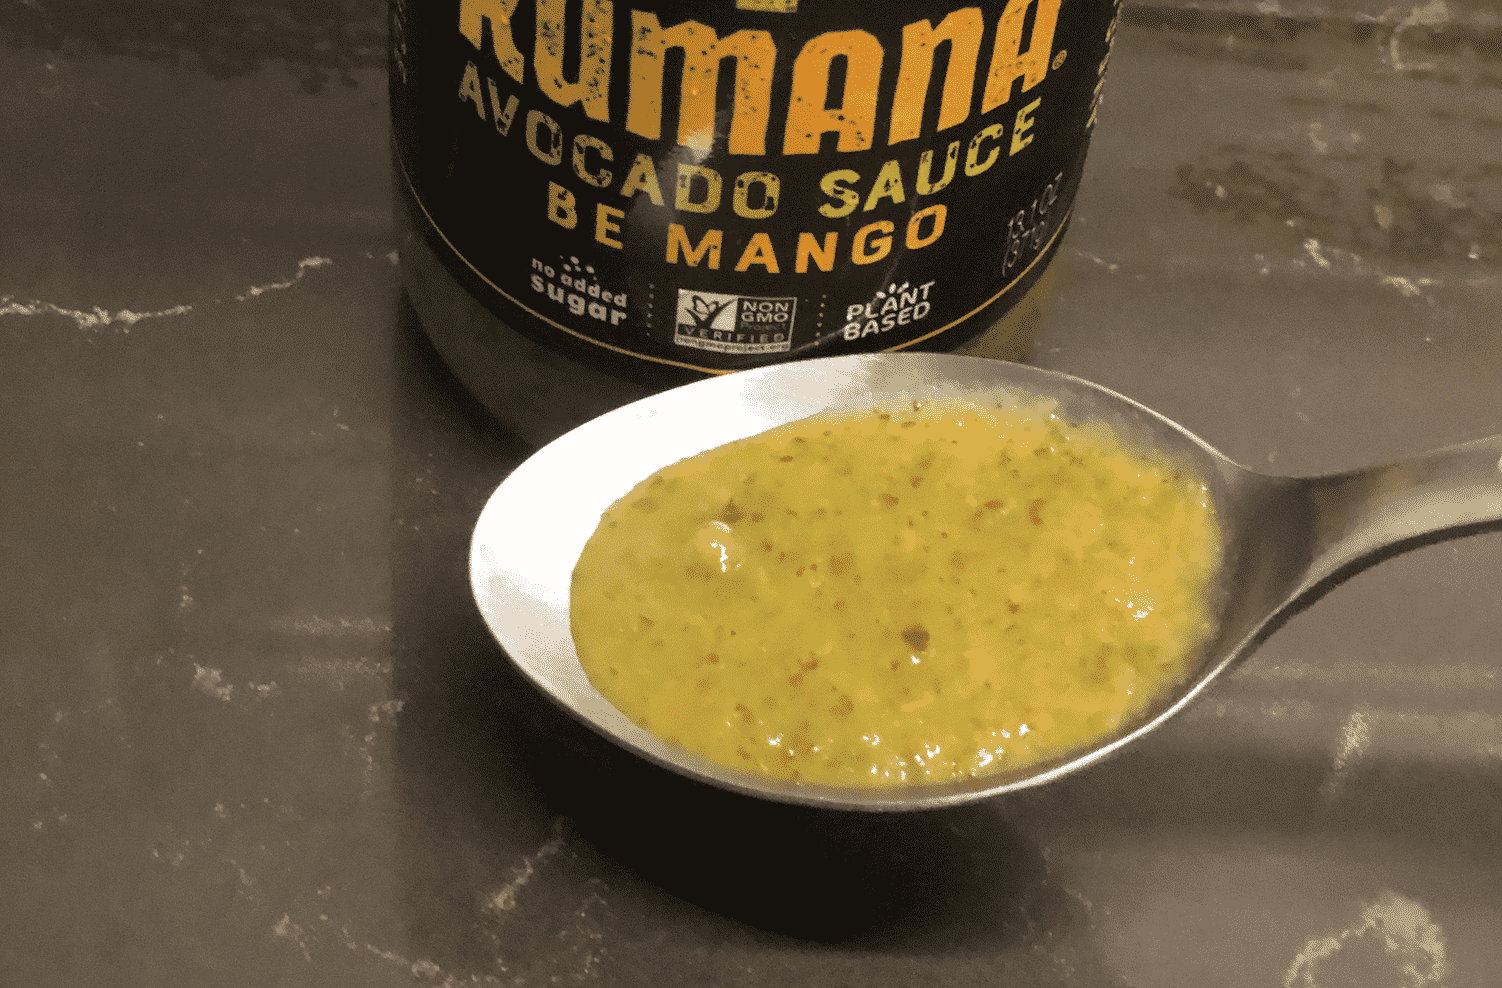 Kumana Avocado Sauce Be Mango on spoon